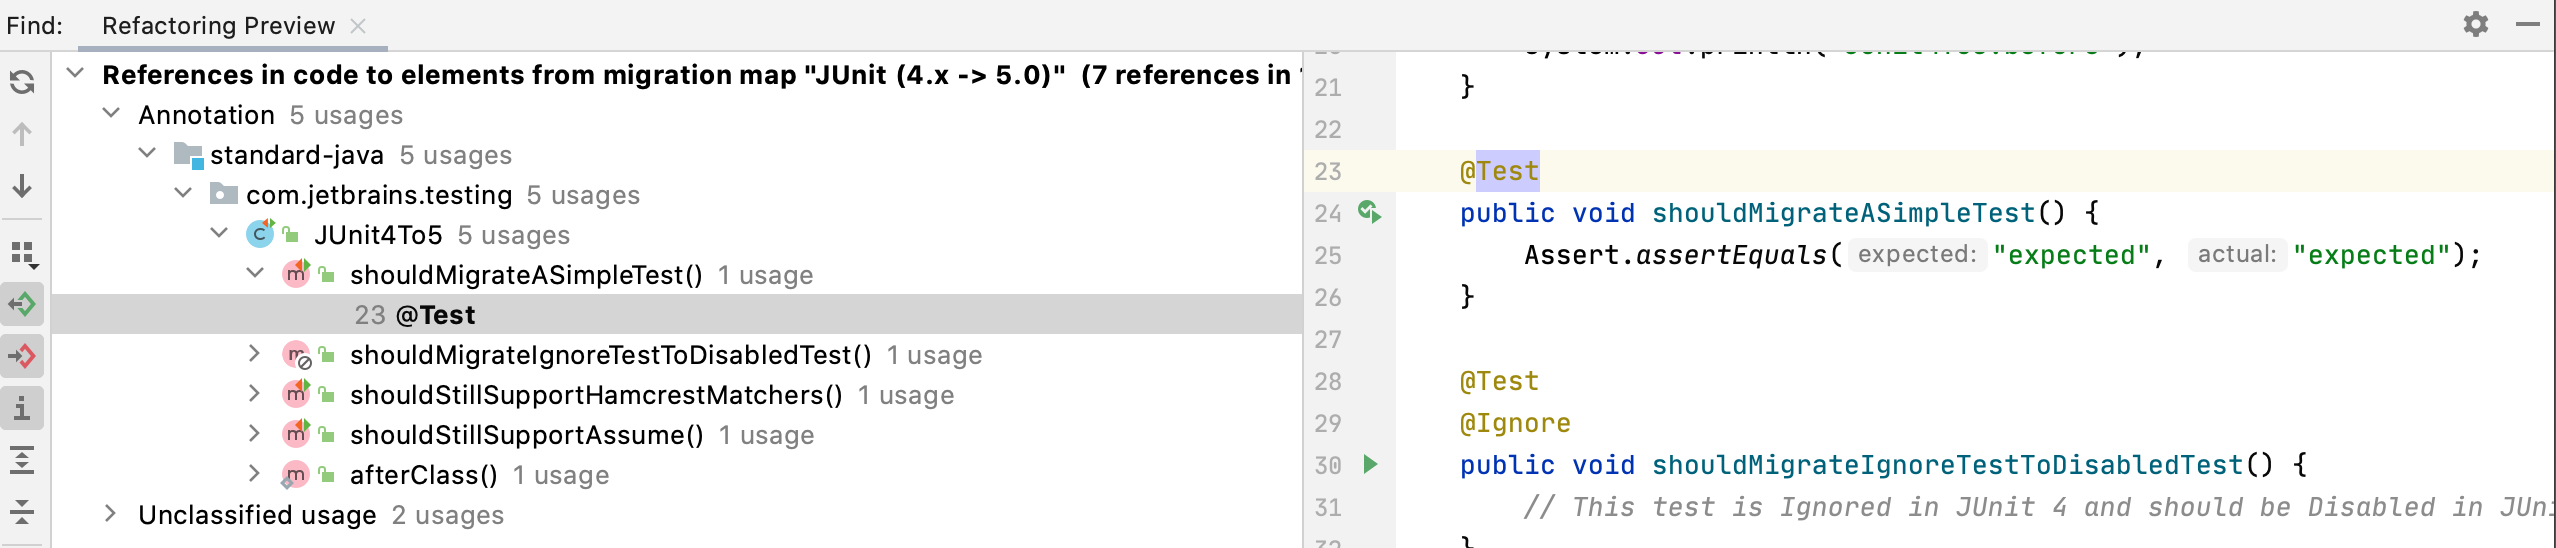 Annotation Refactoring Preview